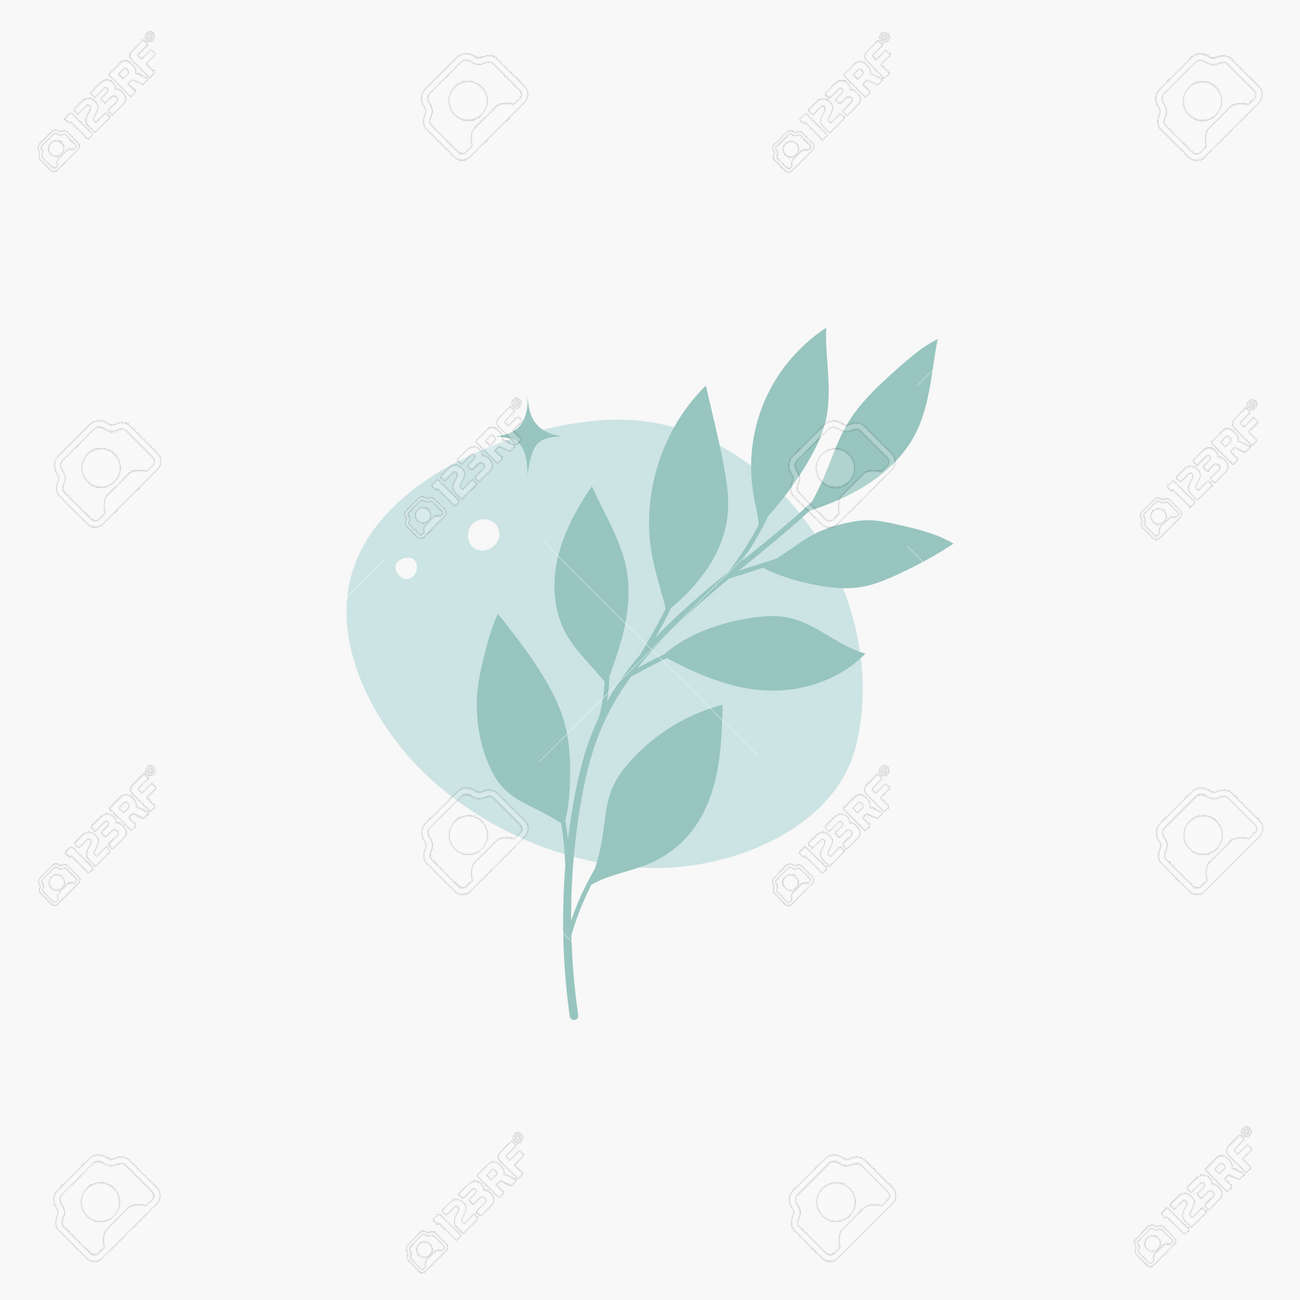 Vector modern floral arrangement background. Cute delicate botanical illustration with leaves and plants. - 168265261